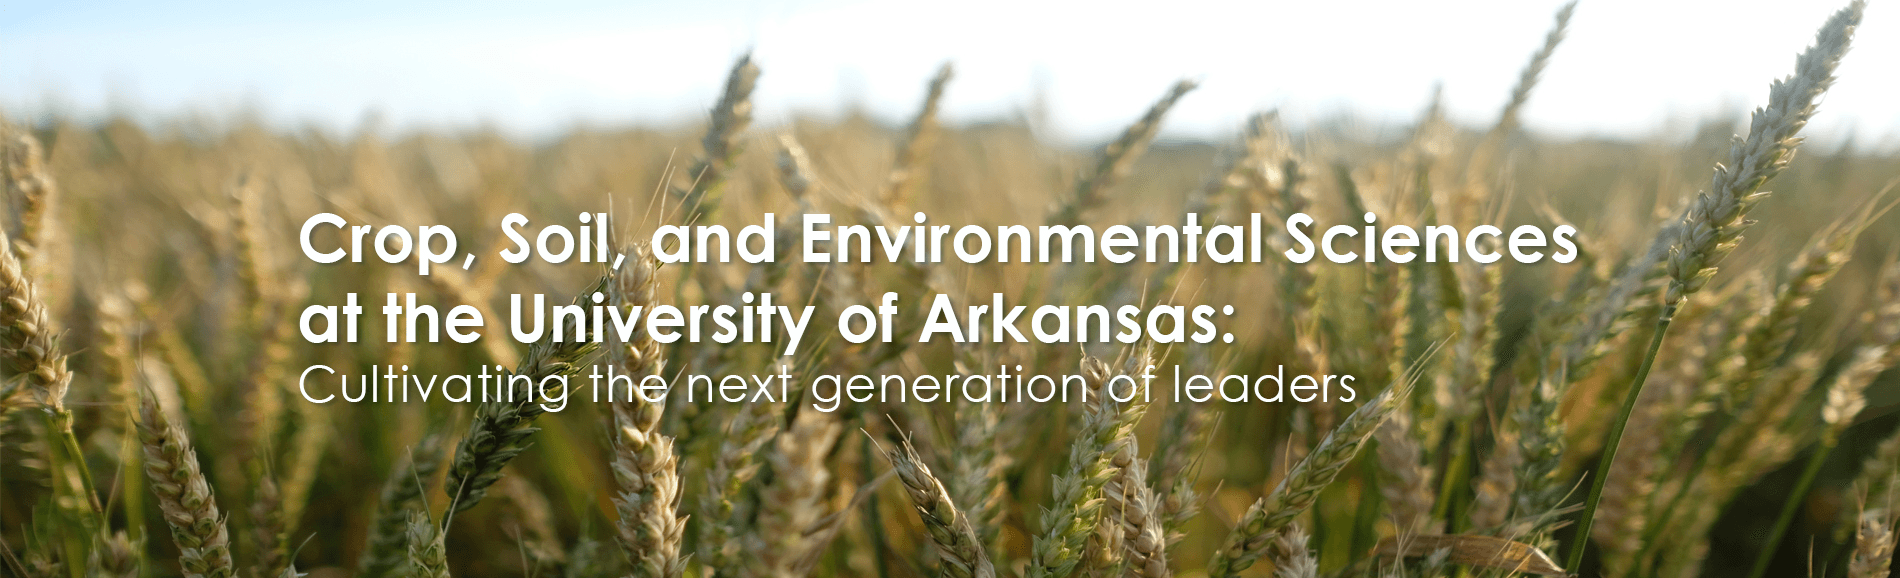 Field of wheat with text overlay that says Crop, Soil and Environmental Science at the University of Arkansas: cultivating the next generation of leaders